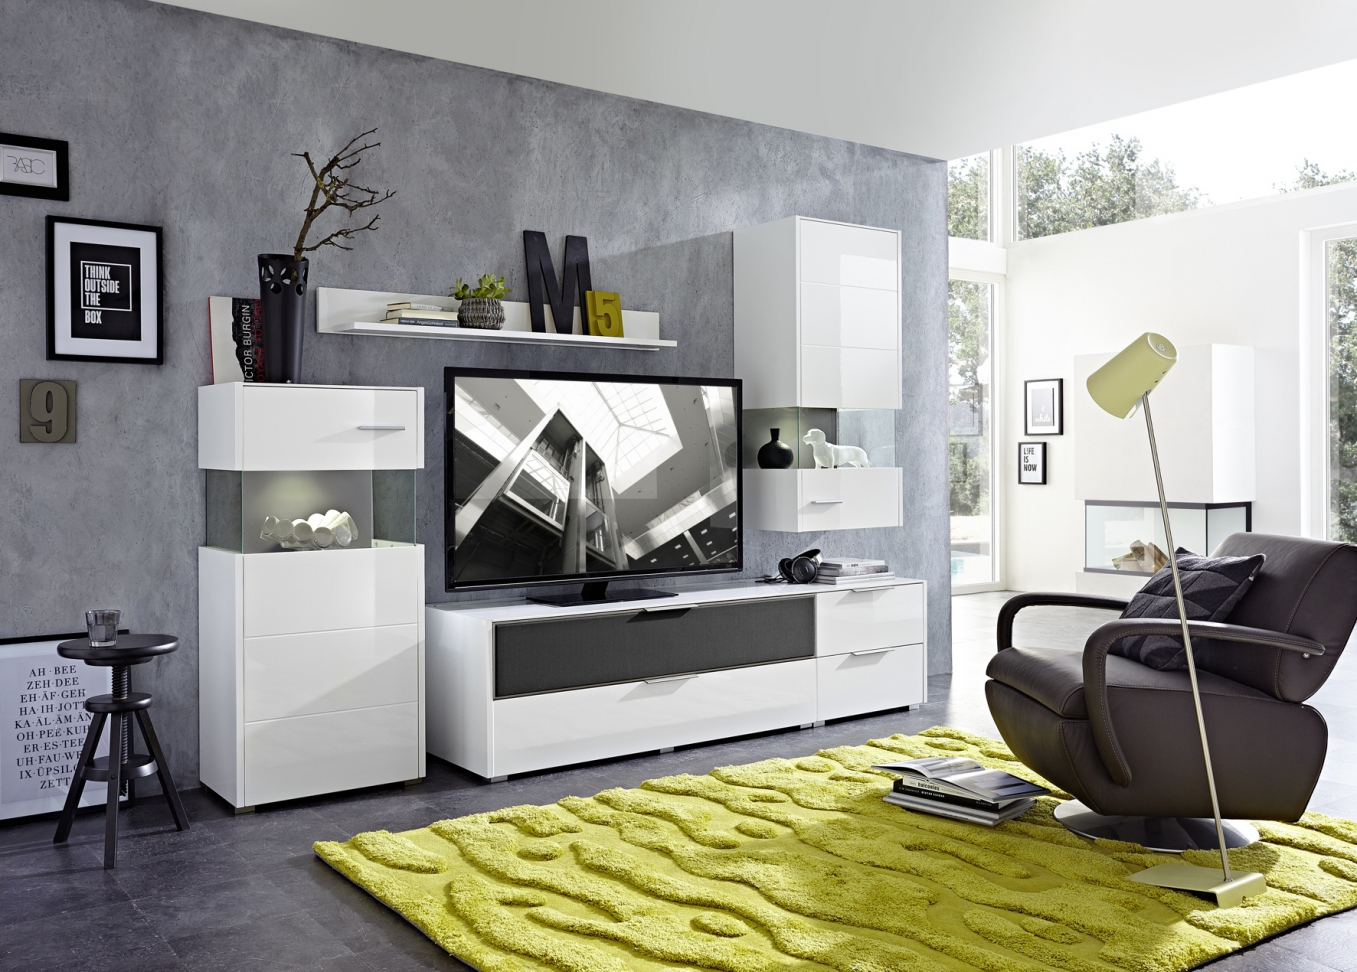 wohnwand poco poco wohnzimmer with poco wohnzimmer with wohnwand poco poco mediawand. Black Bedroom Furniture Sets. Home Design Ideas